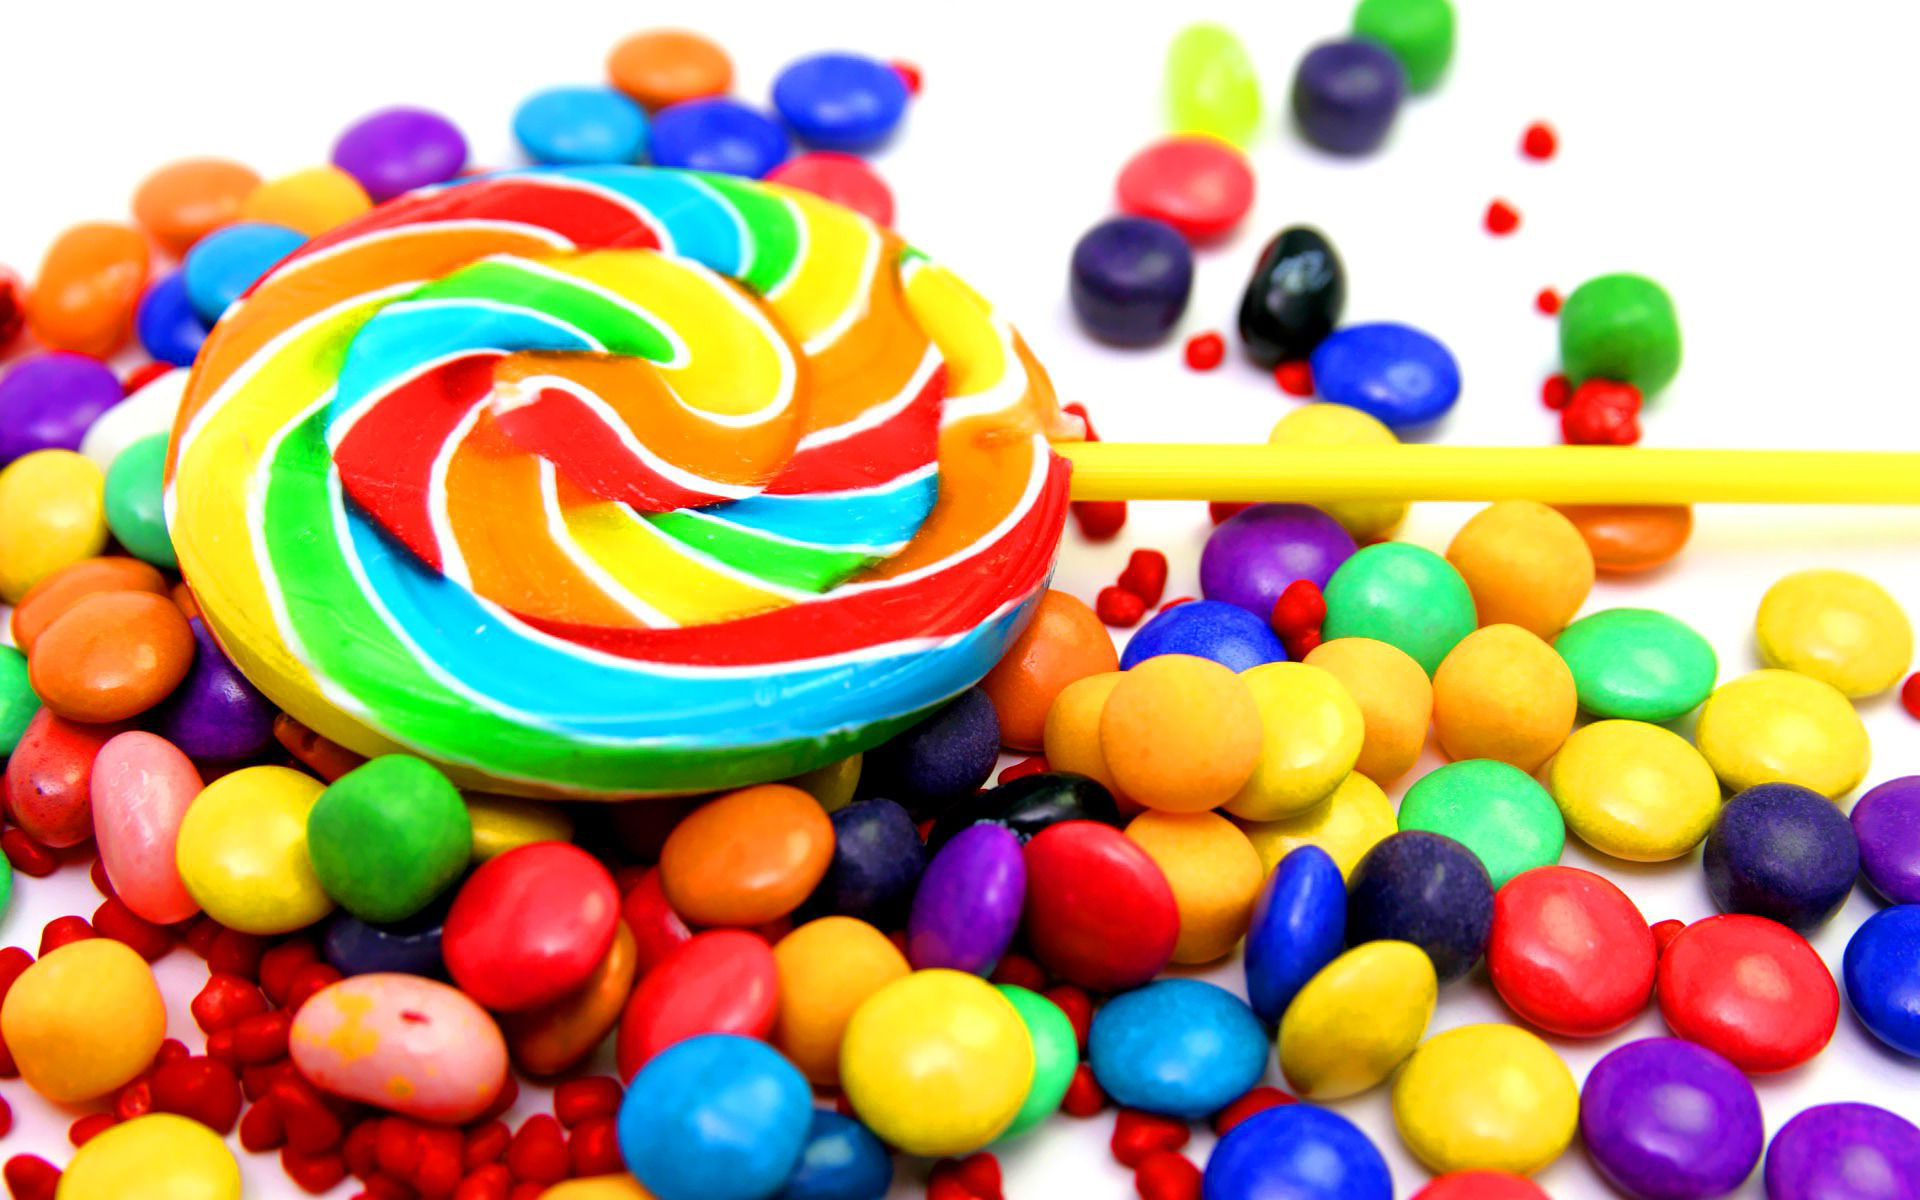 Candy HD Wallpapers   WallpaperAsk 1920x1200